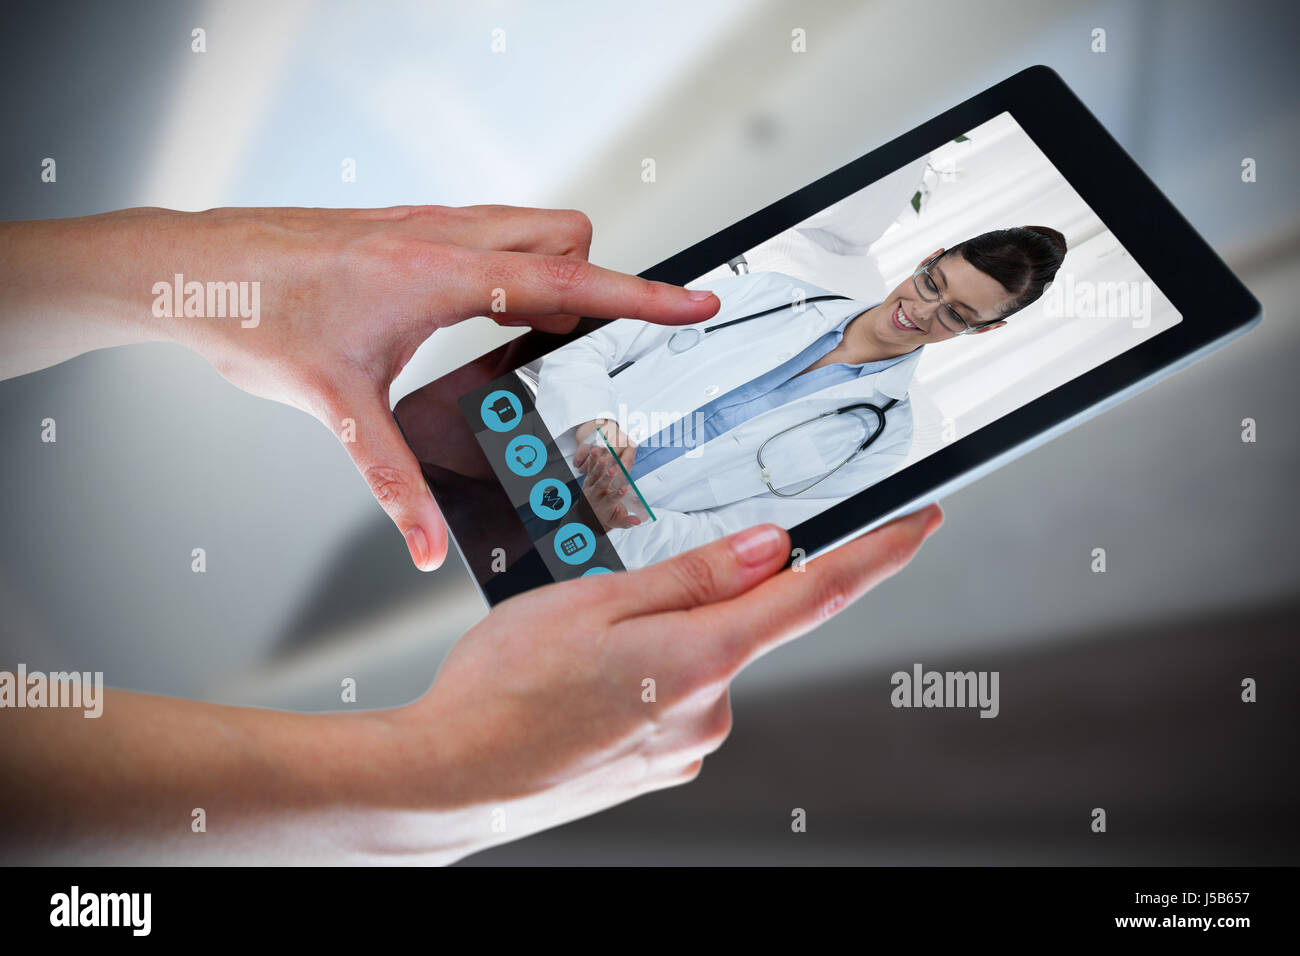 Hands using digital tablet against white background against bright white room with windows - Stock Photo